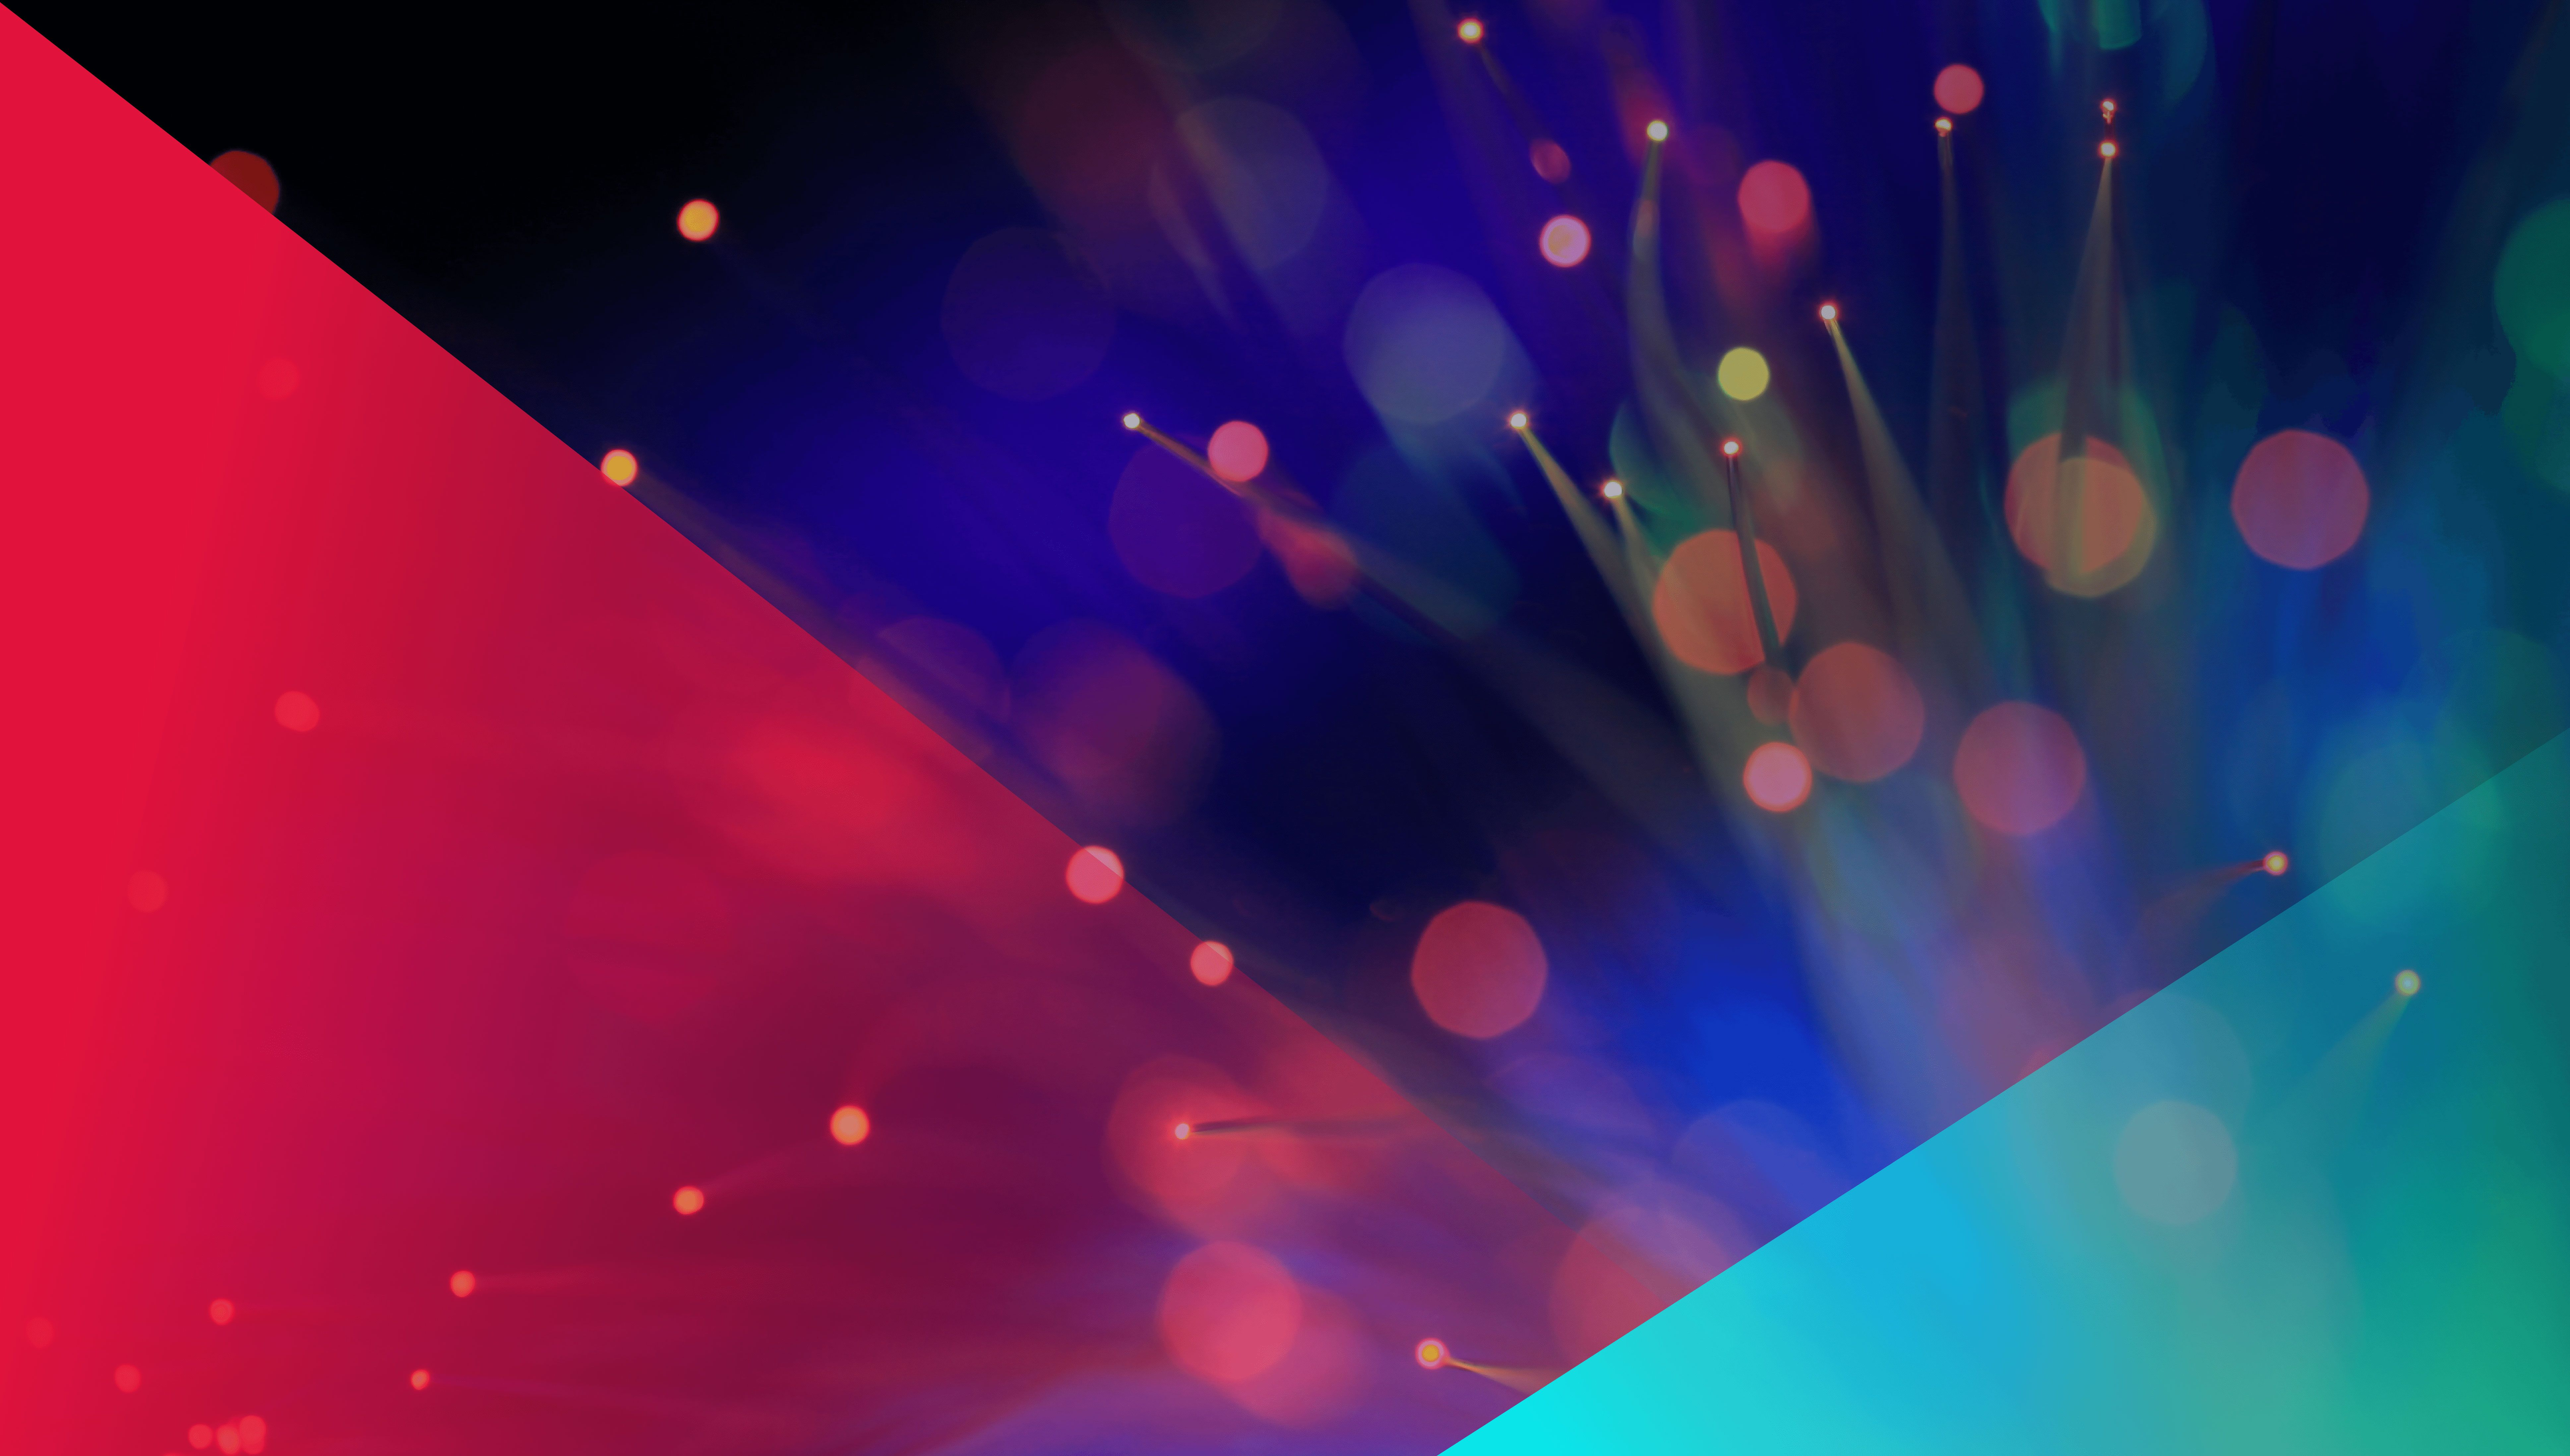 Light Colorful Wallpaper Picture Wallpaper Pc 4k Wallpapers For Pc Cool Desktop Wallpapers